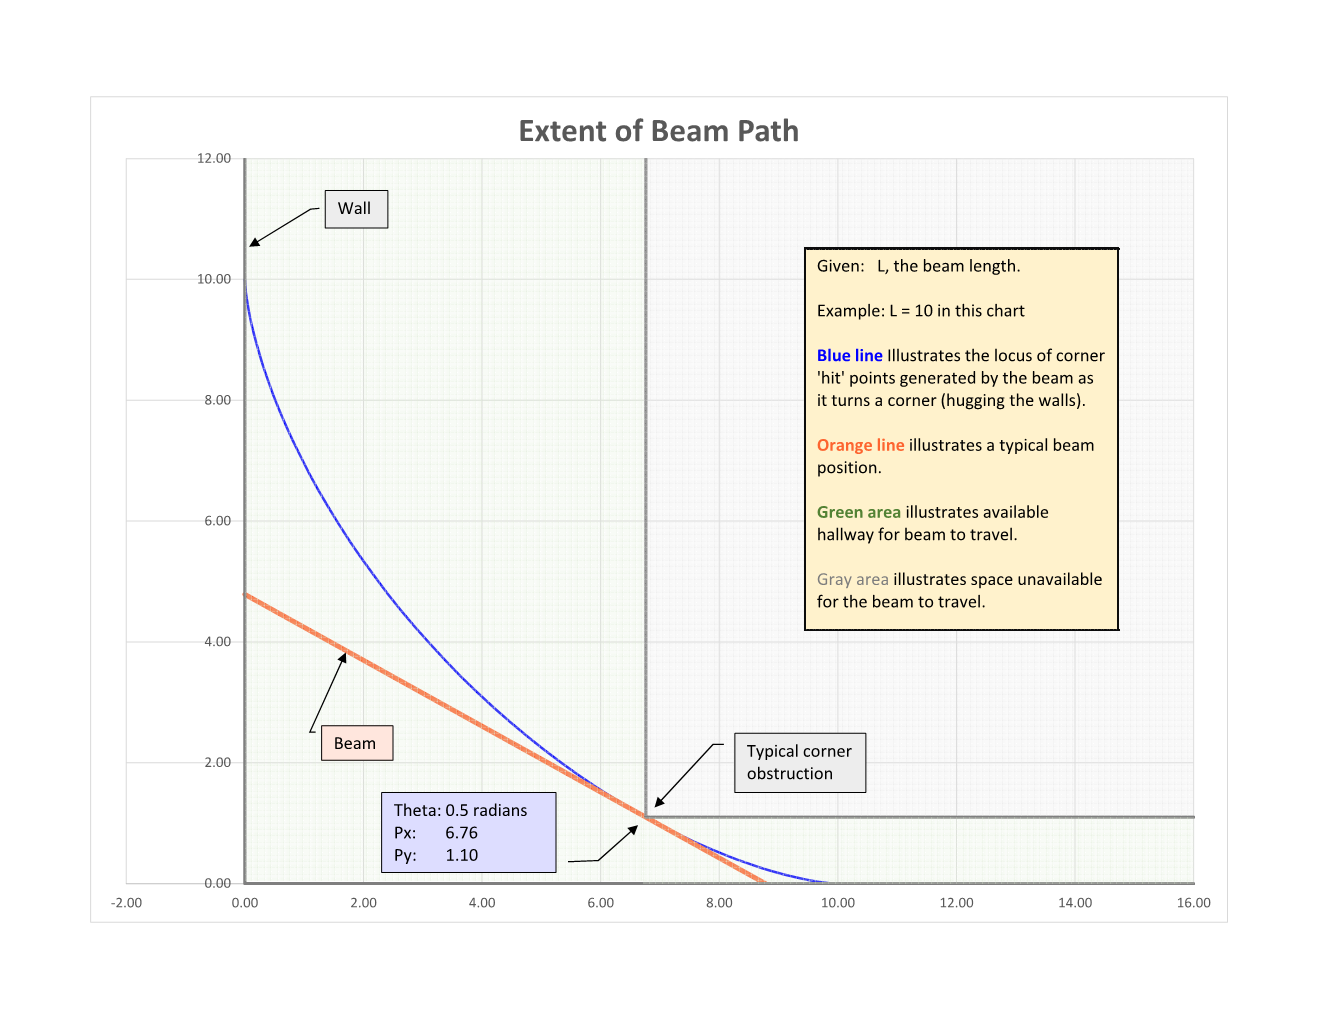 Chart showing extent of beam path